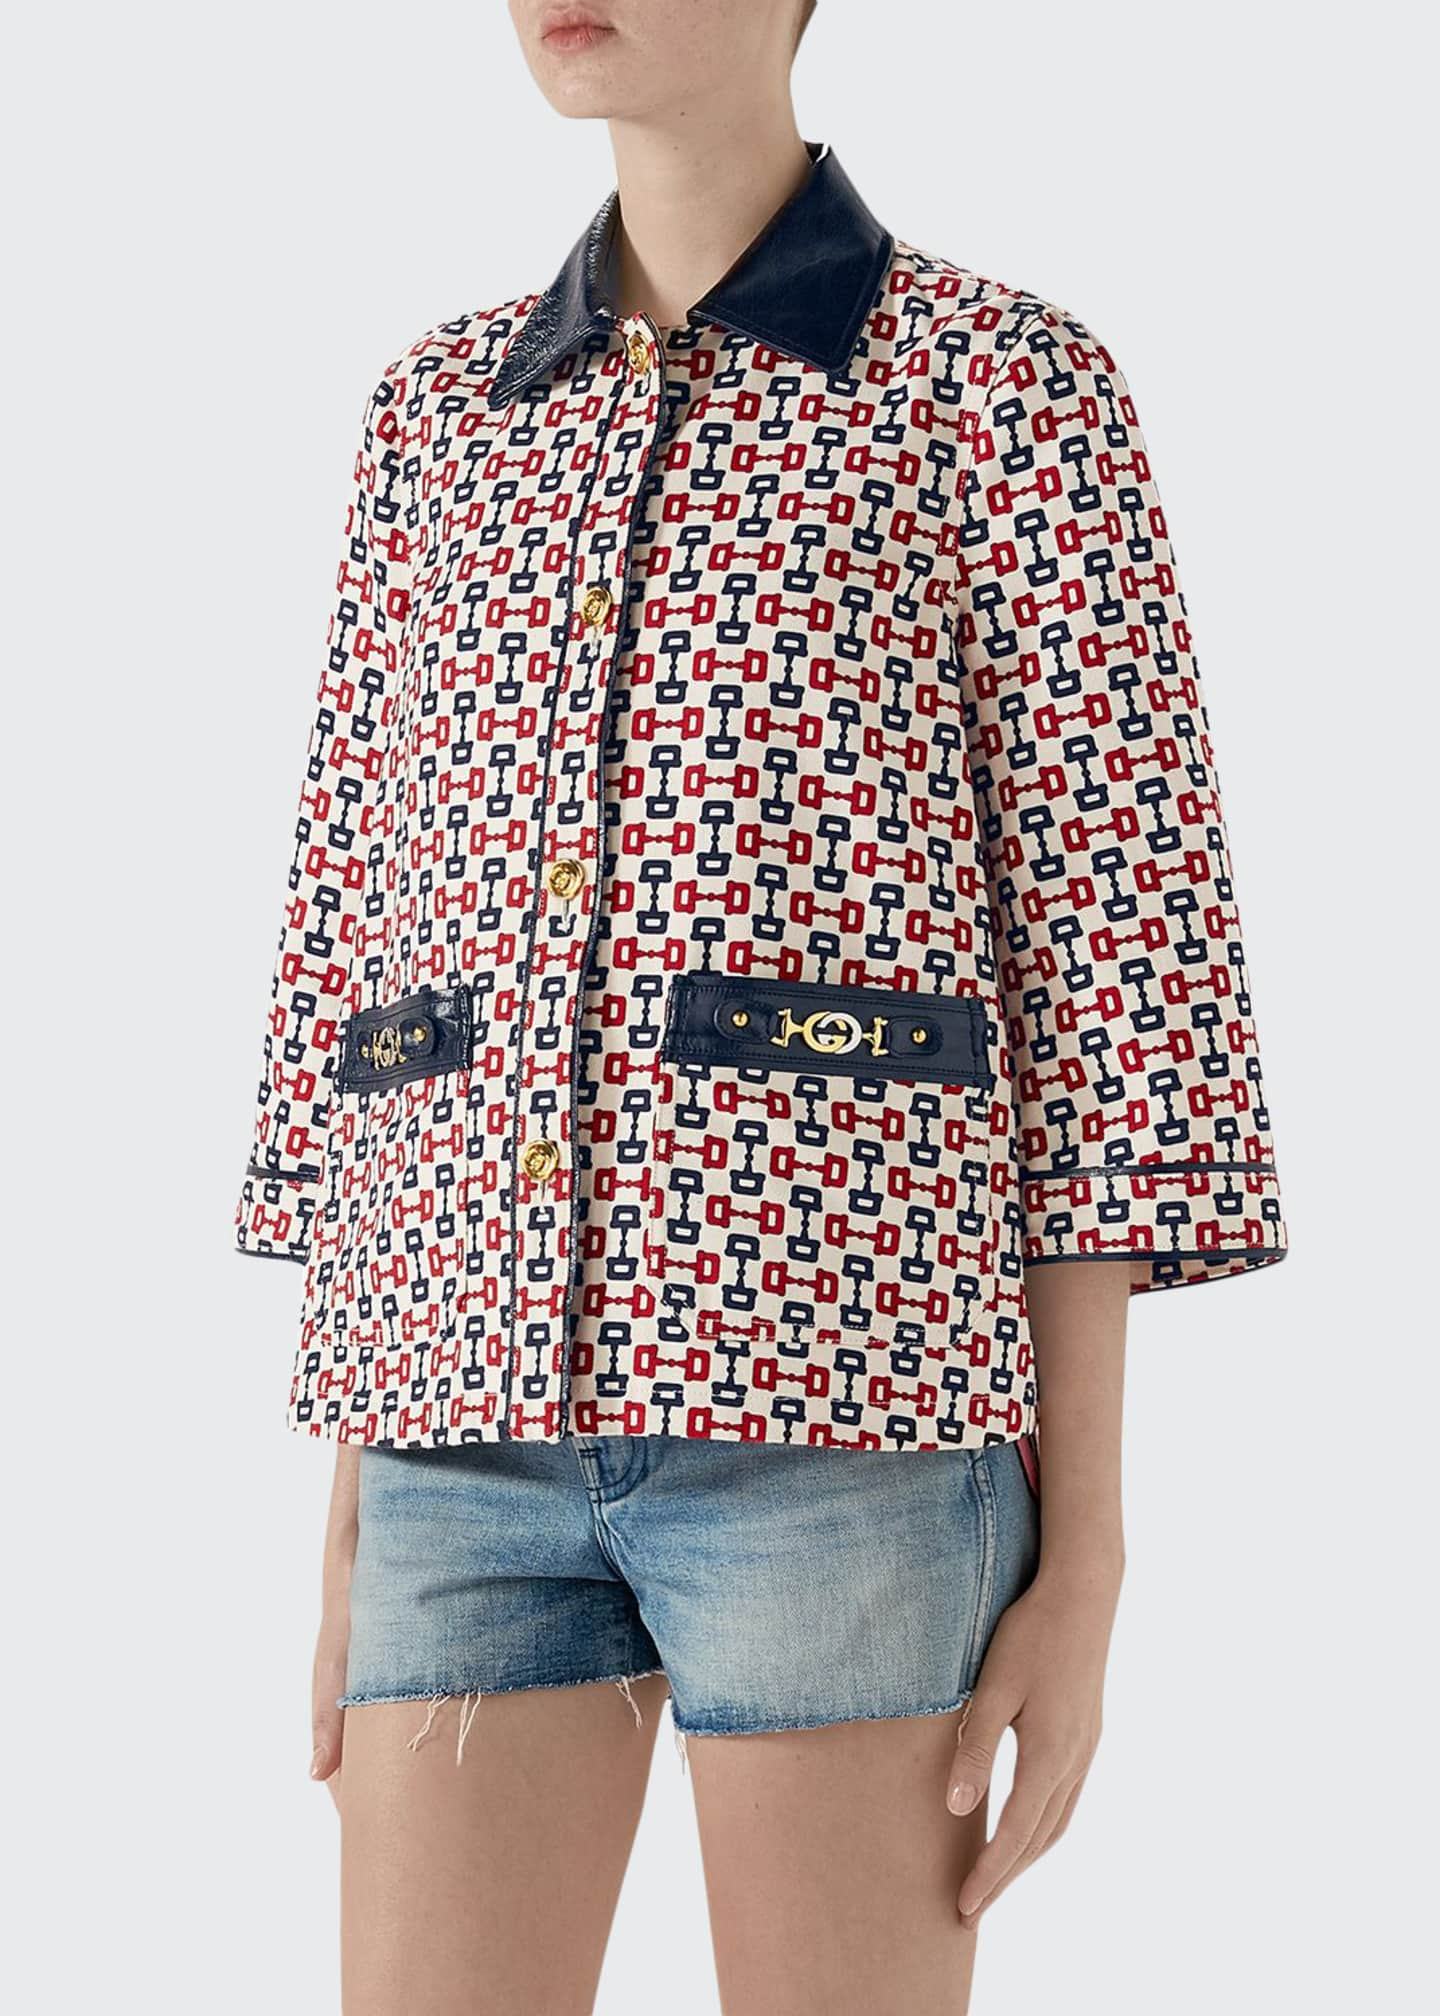 Gucci Horsebit-Print Swing Cape Jacket